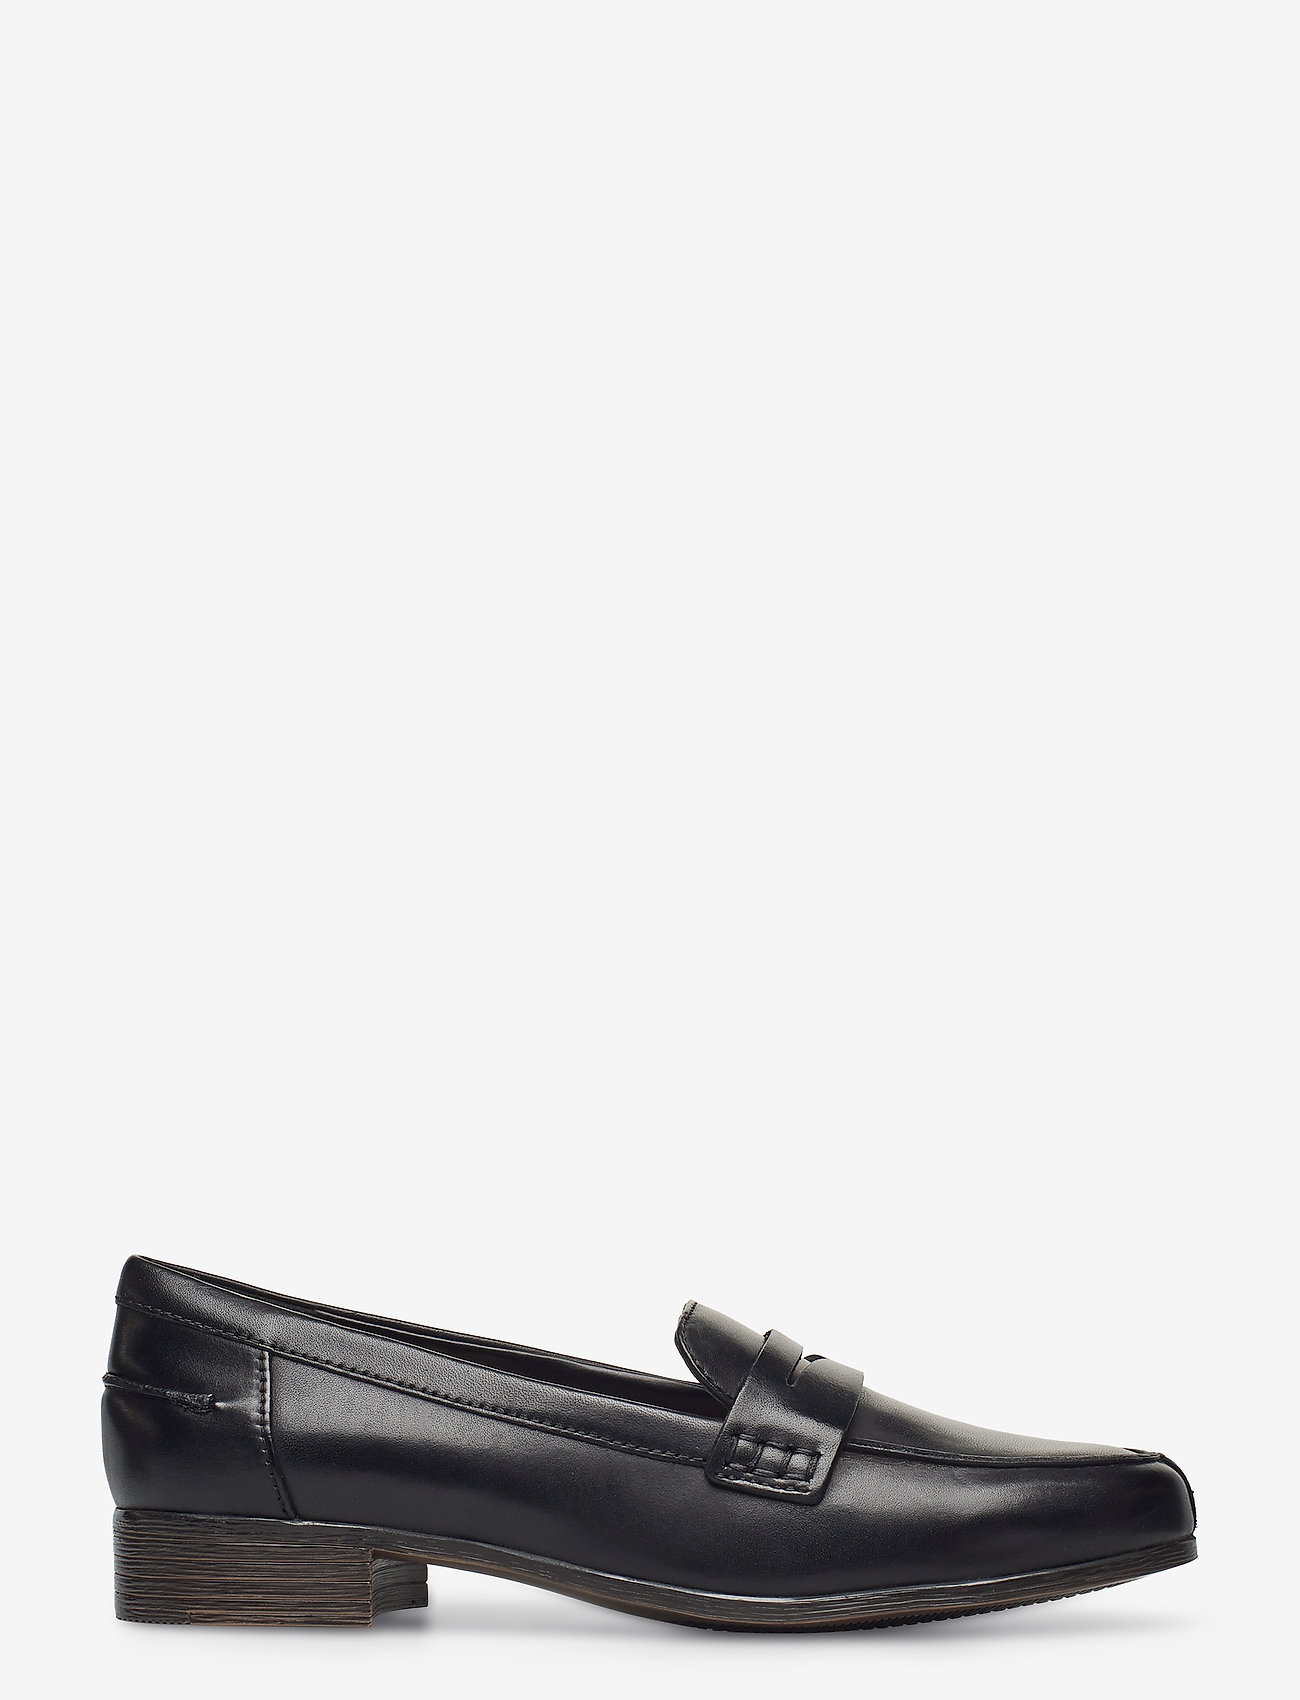 Clarks - Hamble Loafer - mokasiner - black leather - 1